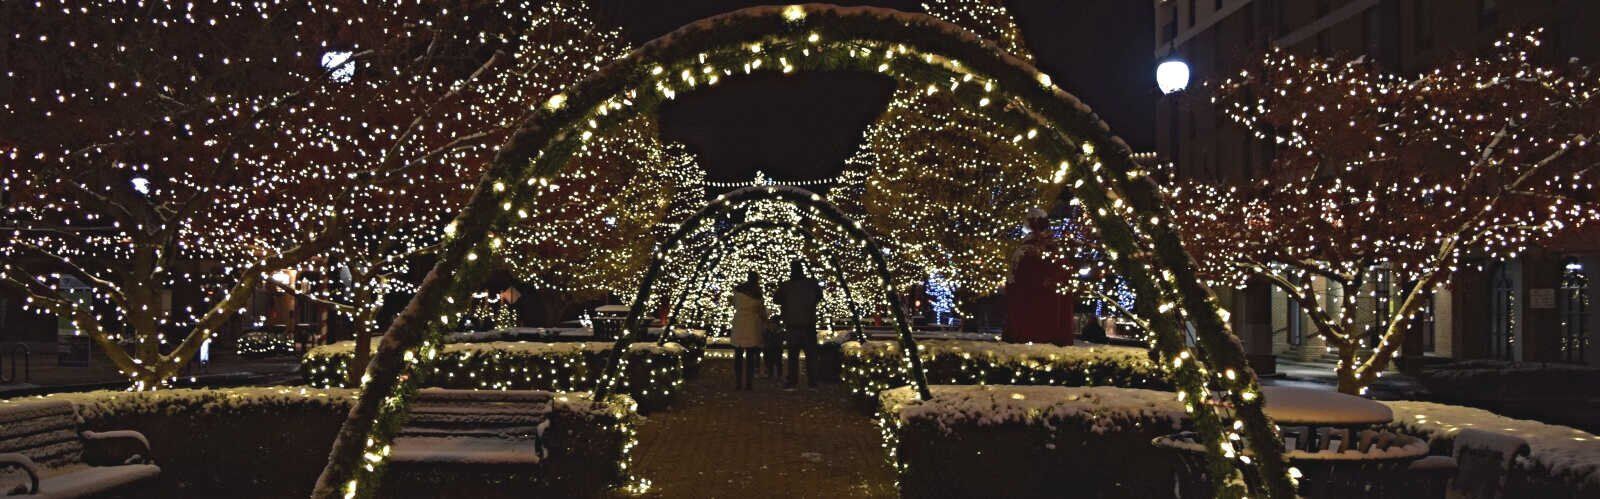 Downtown Springfield is lit up in a whole new way this year, creating an experience to attract people to the area this winter.